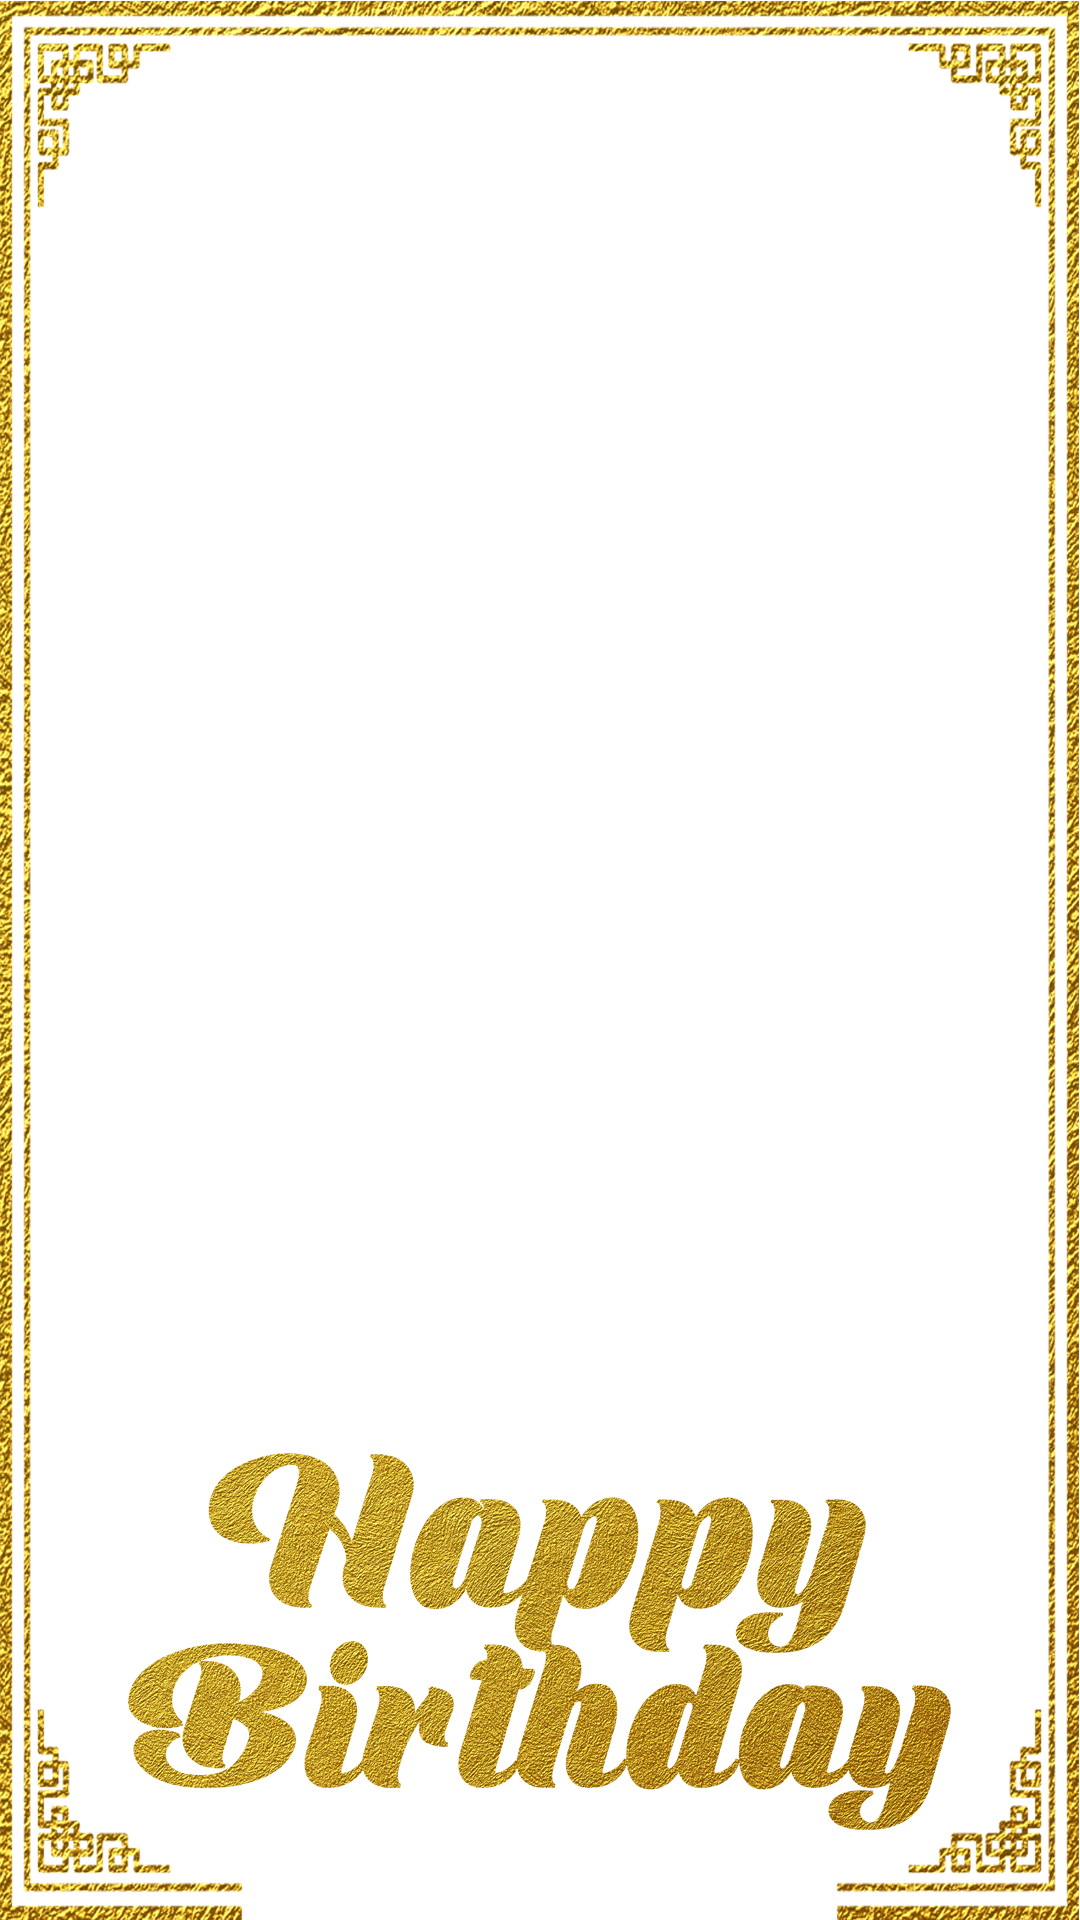 Gold frame birthday snapchat filter geofilter maker on filterpop for Make a geofilter free